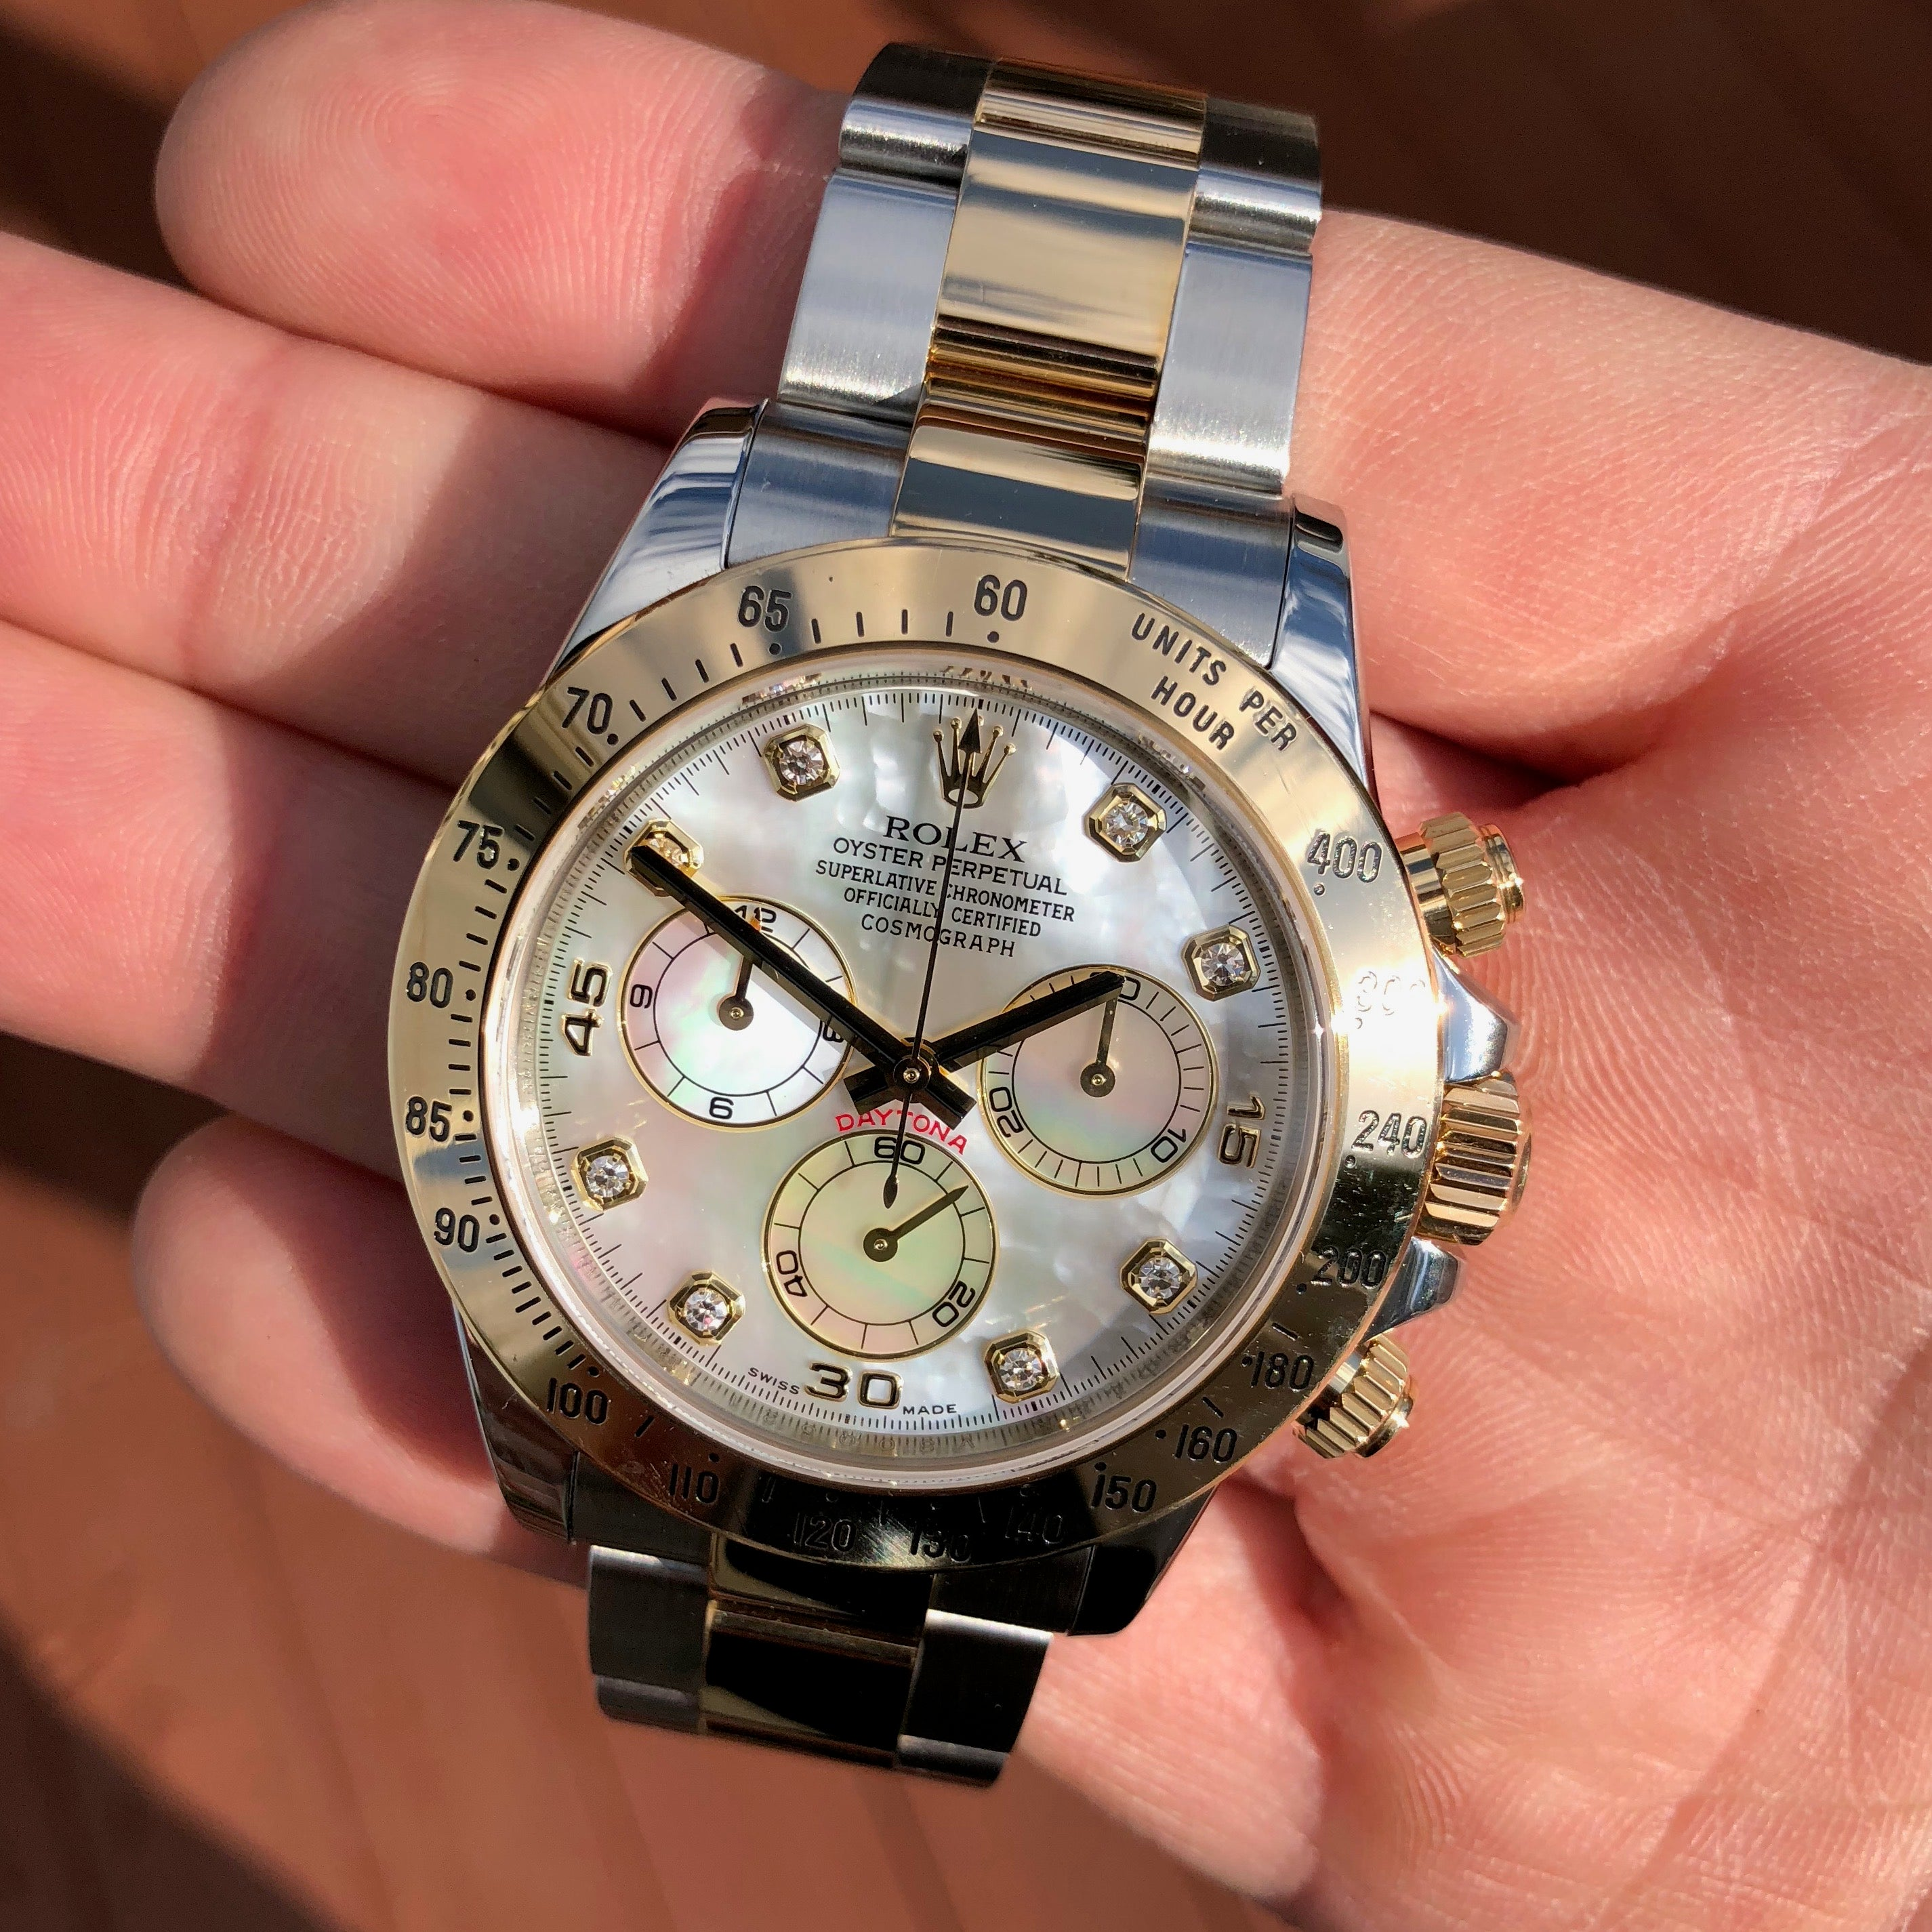 Rolex Daytona 116523 MOP Diamond Two Tone Steel Gold Automatic Caliber 4130 Wristwatch - Hashtag Watch Company